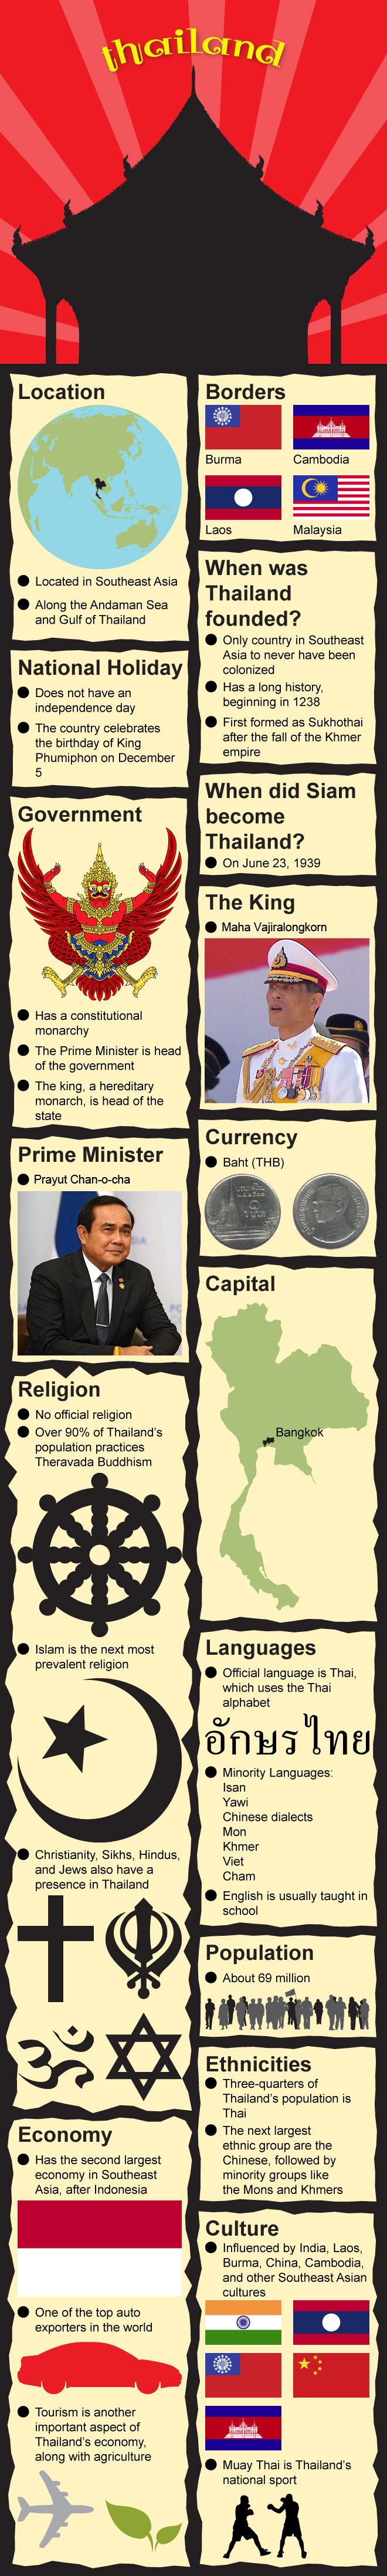 Infographic of Thailand Facts